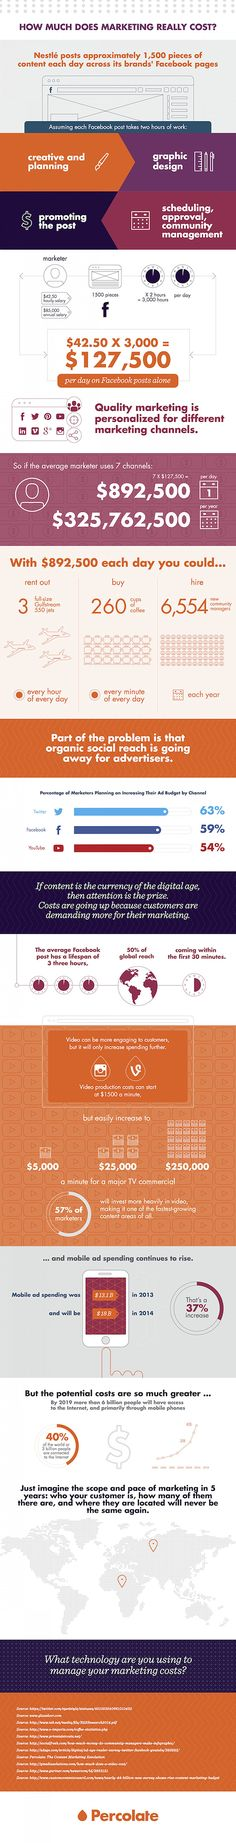 The Staggering Cost of Content Marketing (Infographic) #SocialMedia #Marketing